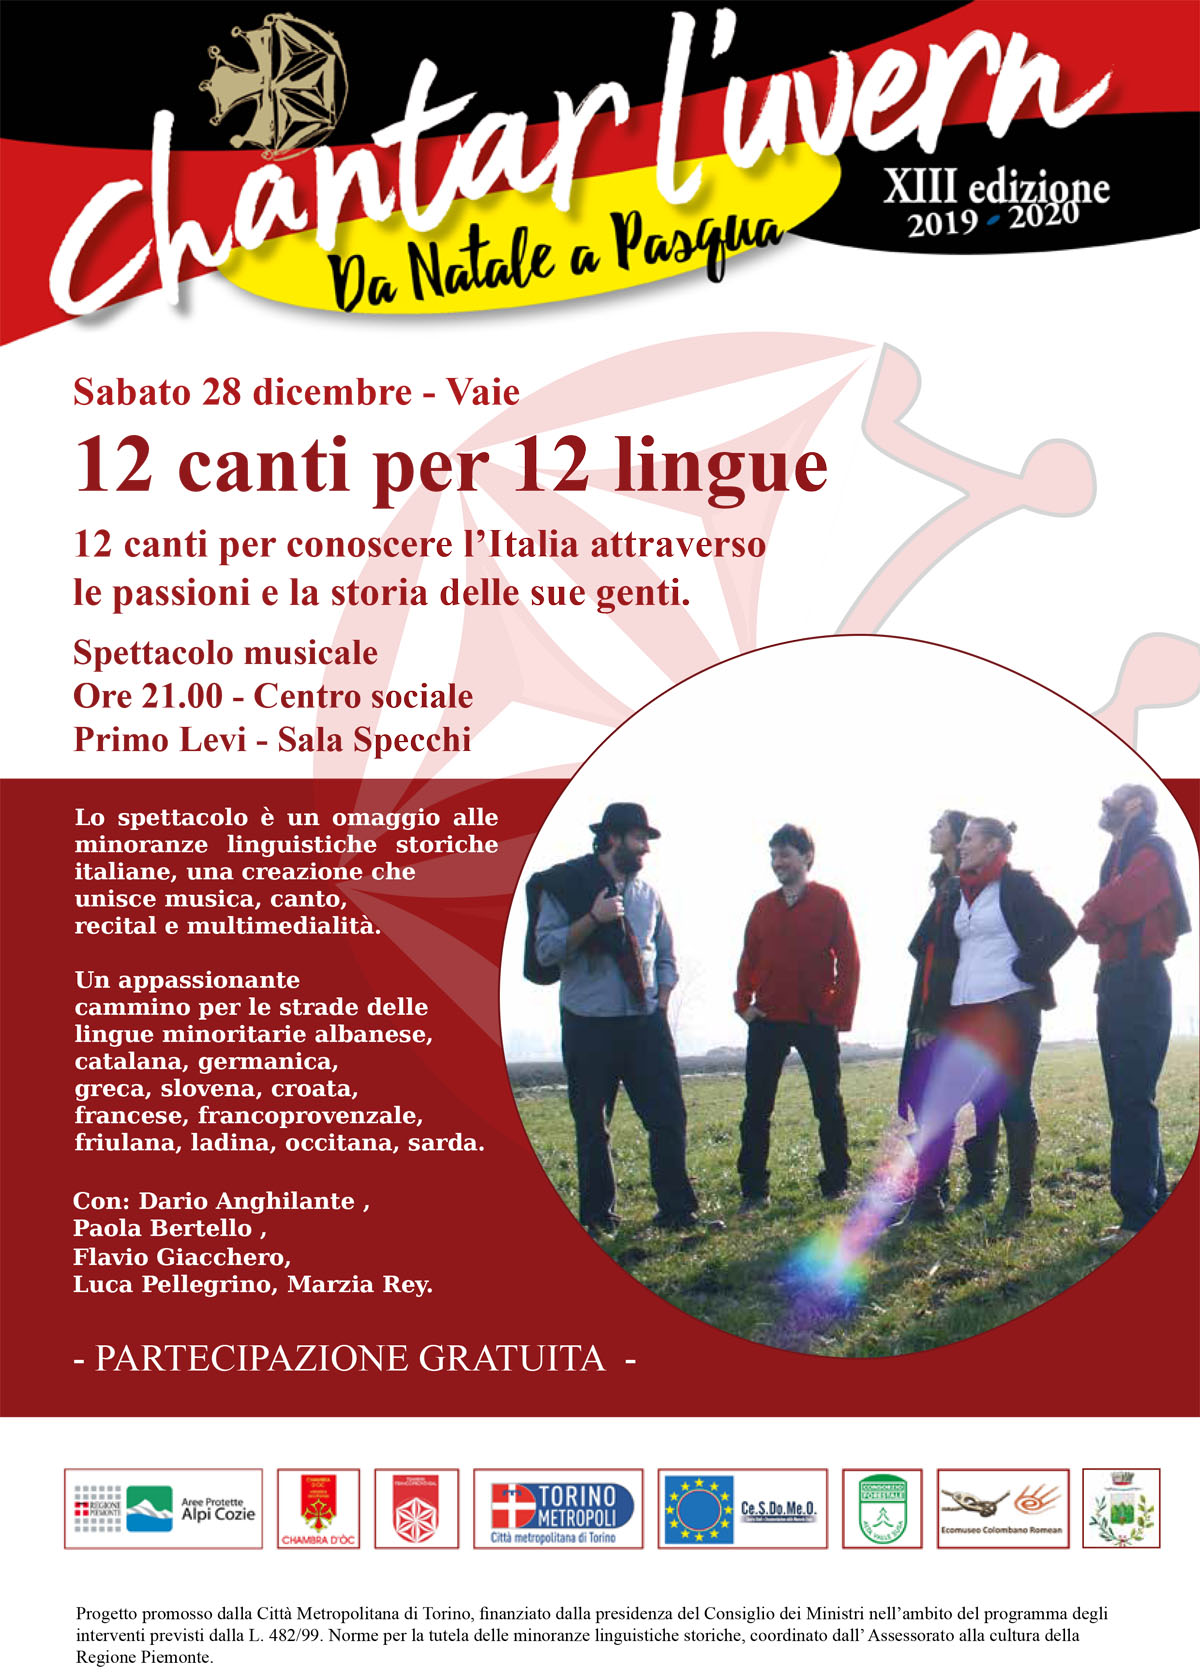 12 canti in 12 lingue Vaie 28 dicembre-1_edited-1..jpg